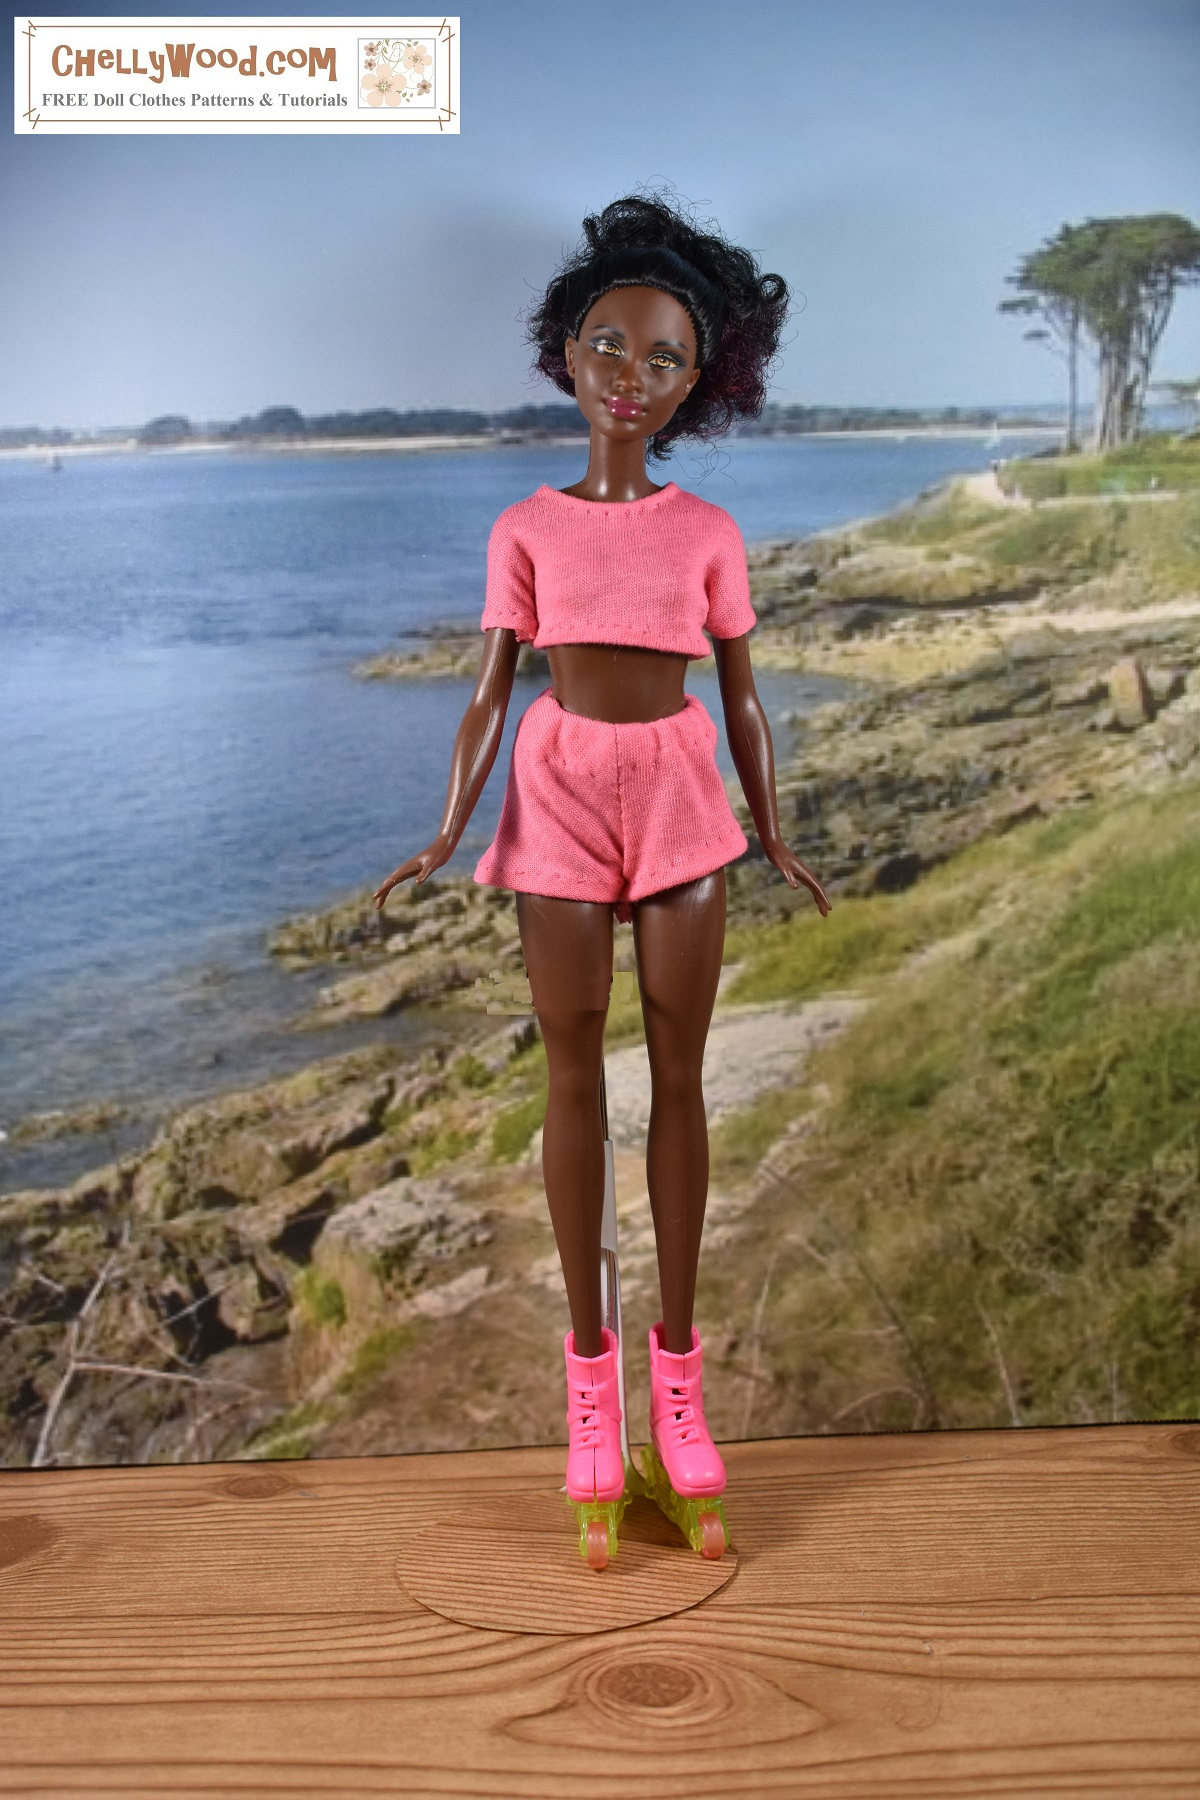 This image shows a Petite Barbie from Mattel wearing handmade doll clothes which include a crop top T-shirt and elastic waist sporty shorts. The free printable PDF sewing patterns for making this outfit for your Petite Barbie (or dolls that are similar in size) can be found at ChellyWood.com under the 10-inch doll clothes pattern gallery.